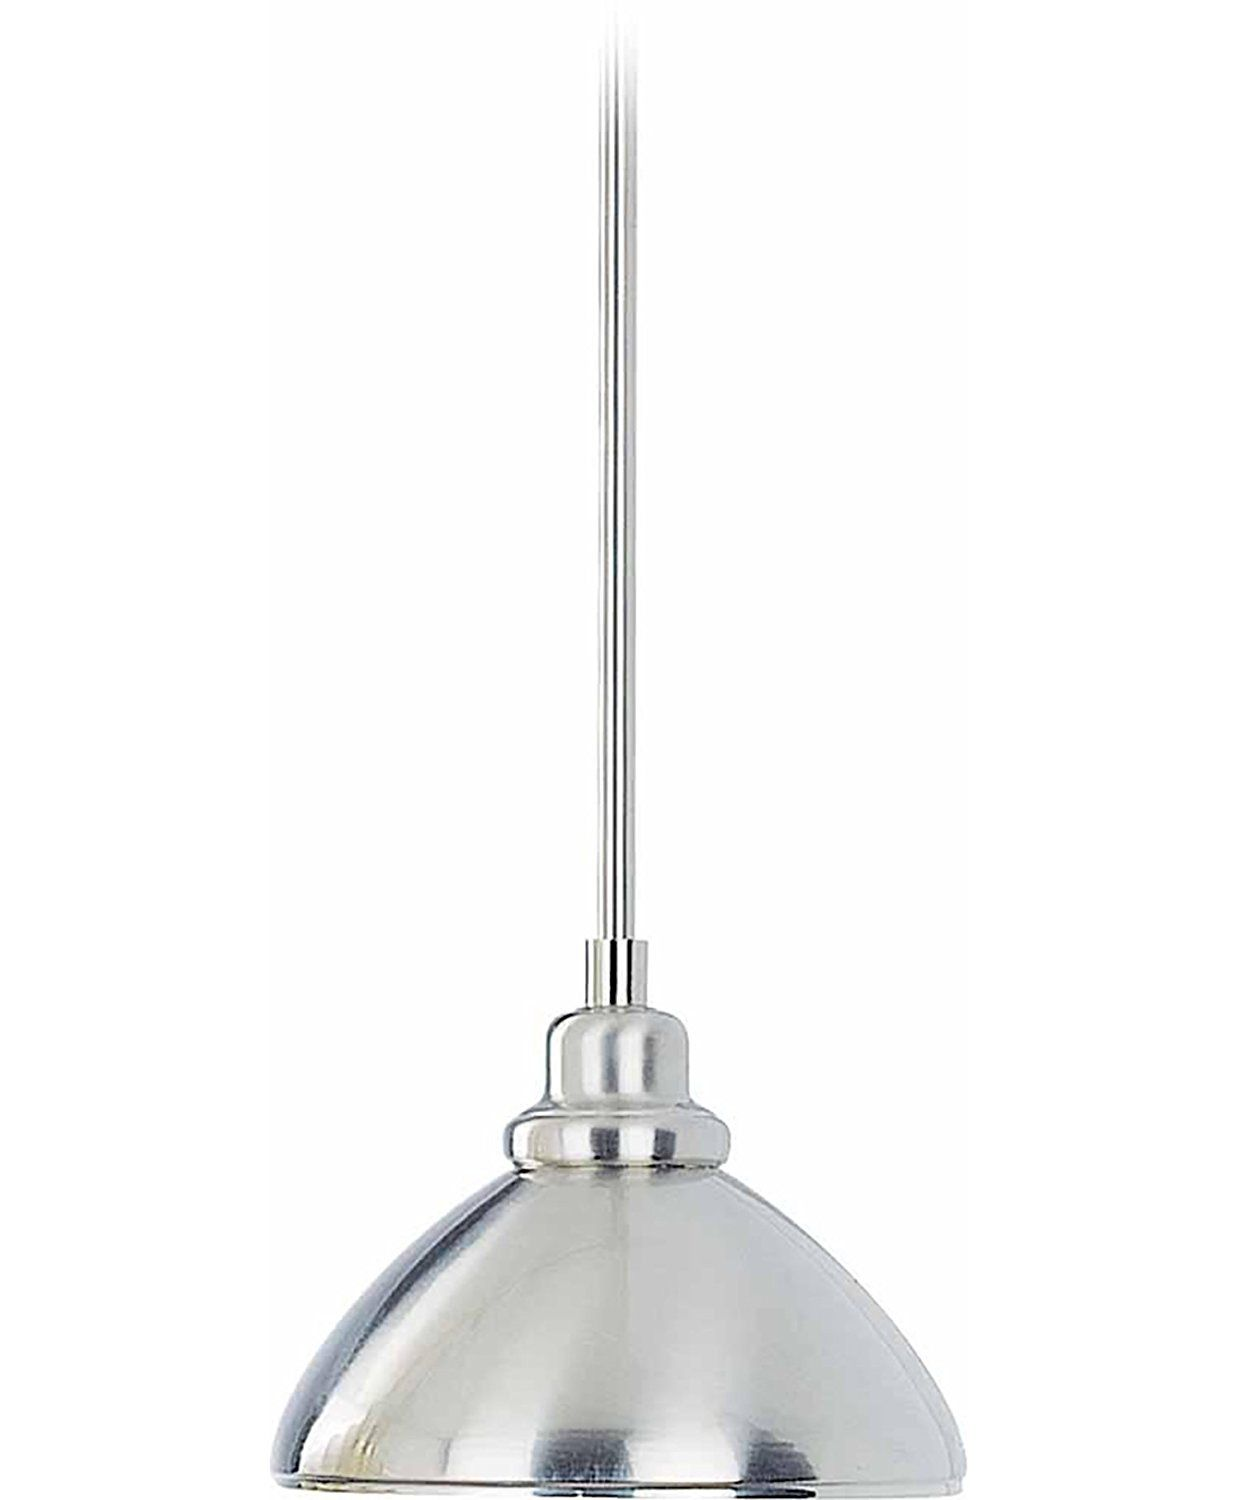 brushed nickel finish mini pendant u ʟıɢһṭ ȗƿ my darkness